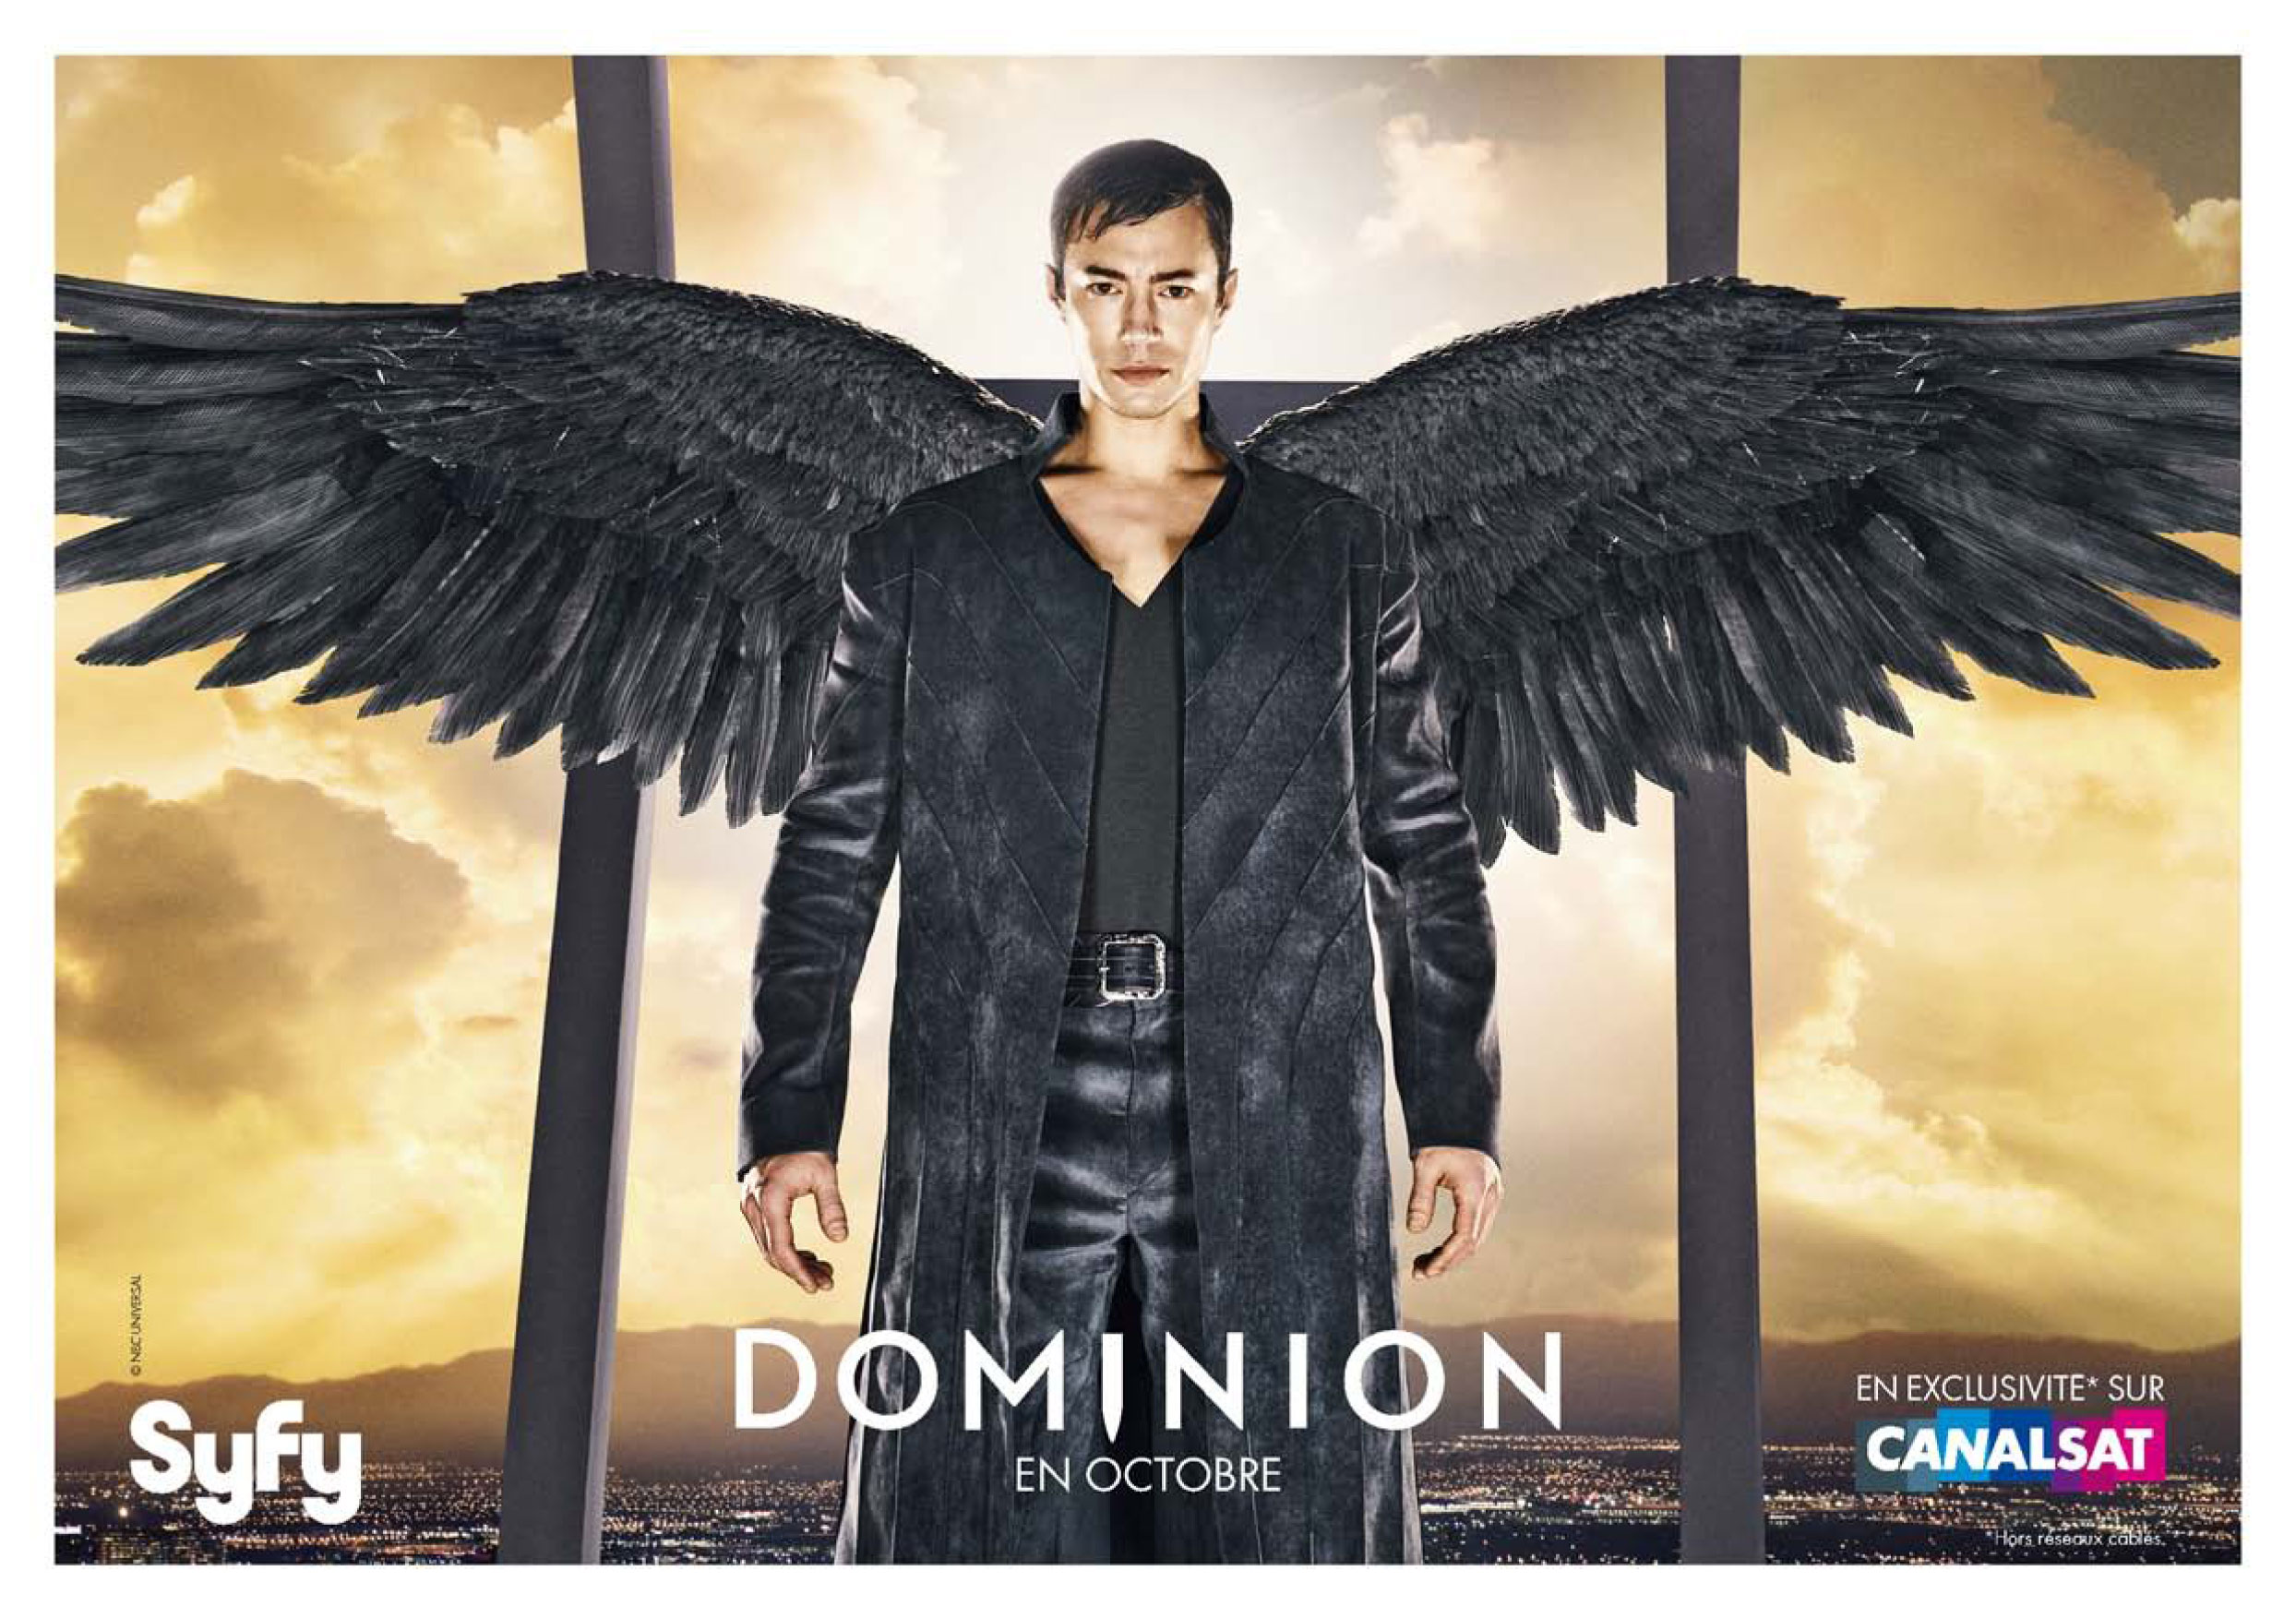 CANALSAT-SERIES_dominion